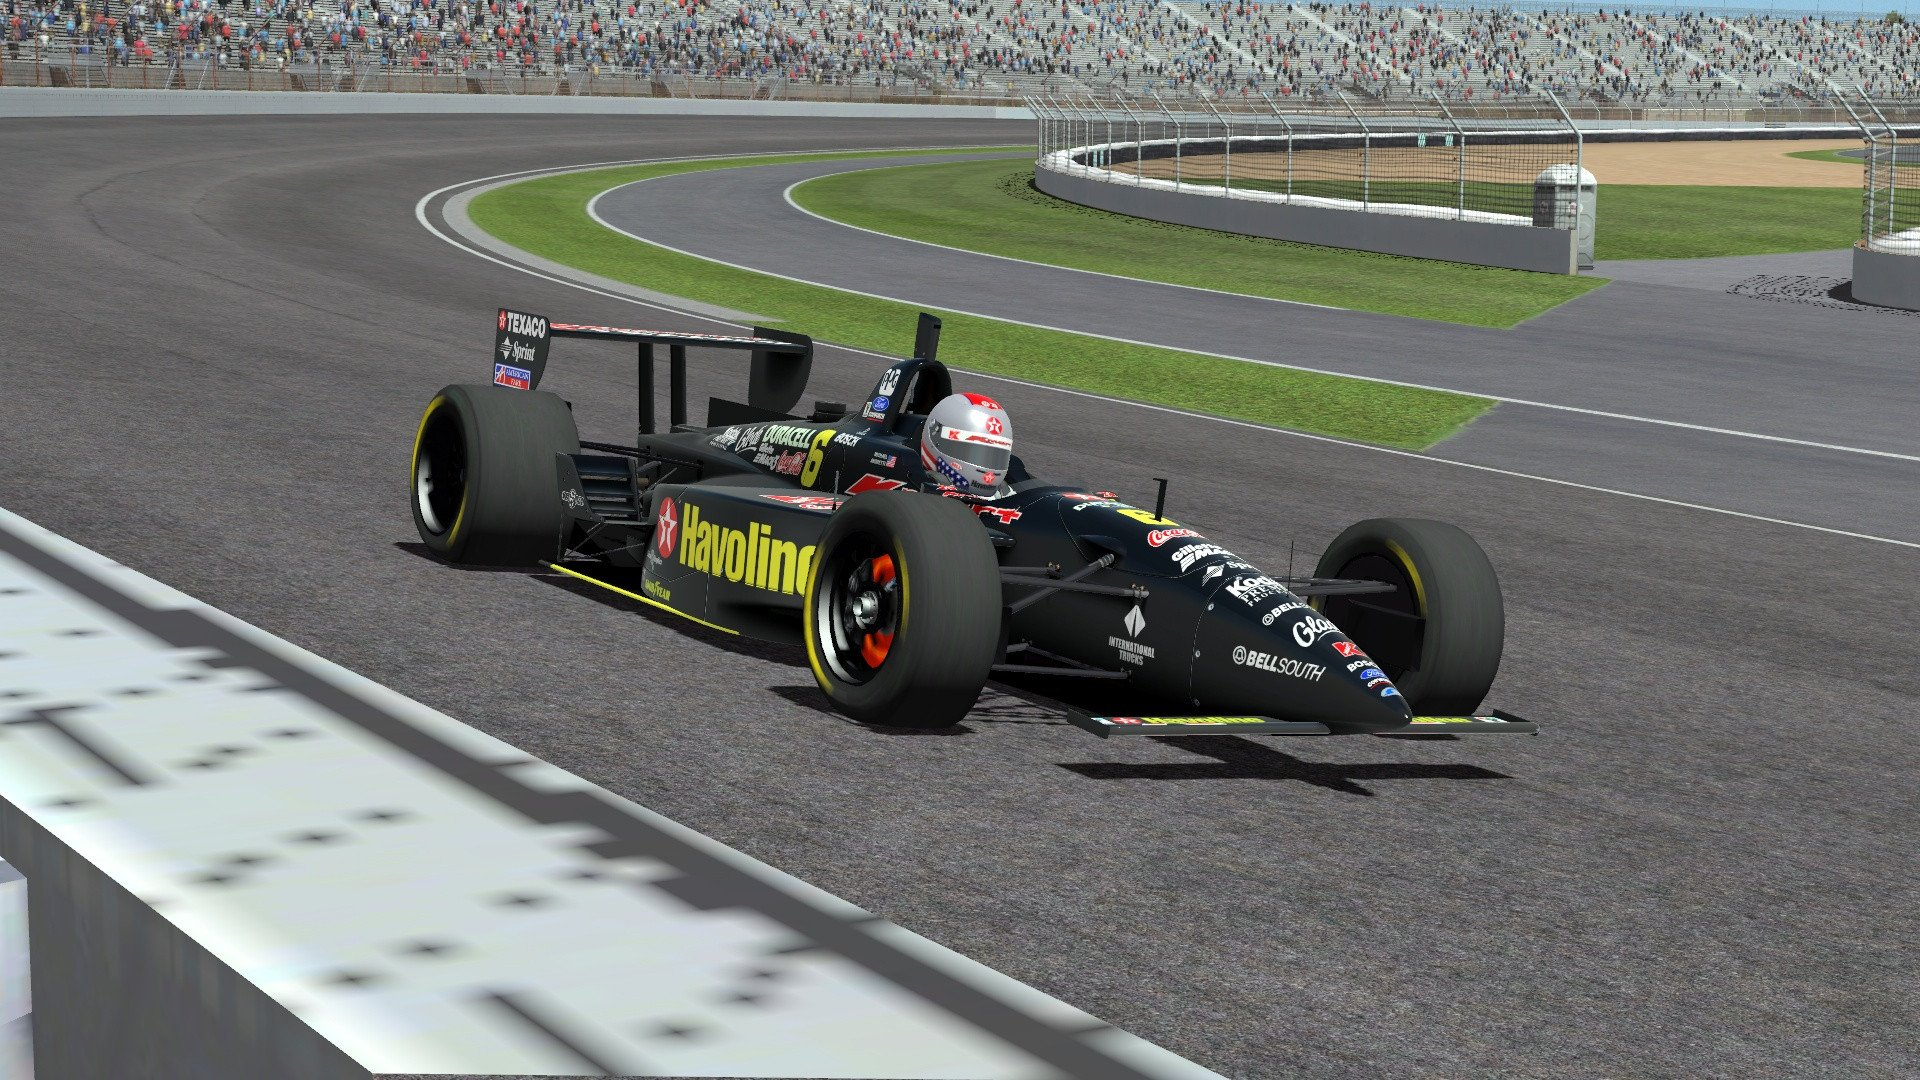 CART Factor Coming to rFactor 2 - Inside Sim Racing